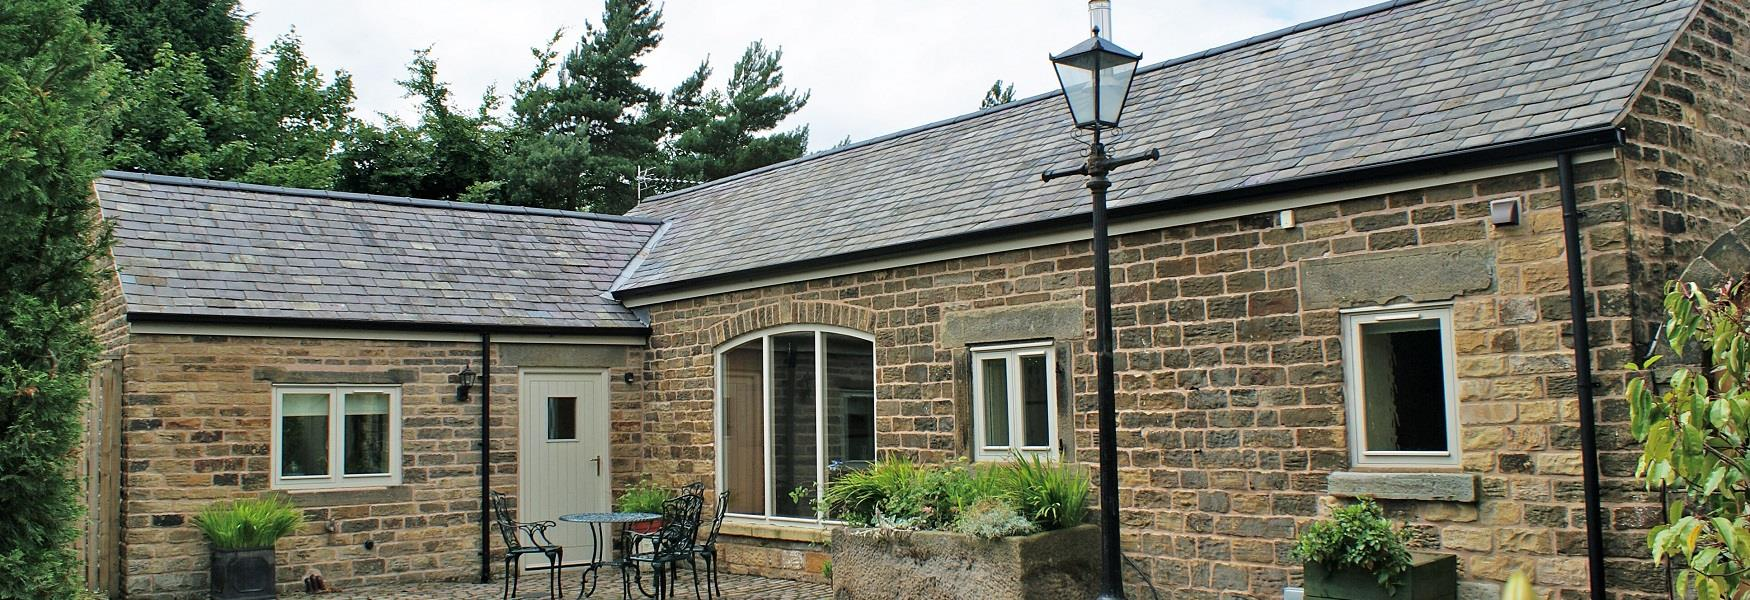 Goosberry Barn Holiday Home at Holmesfield